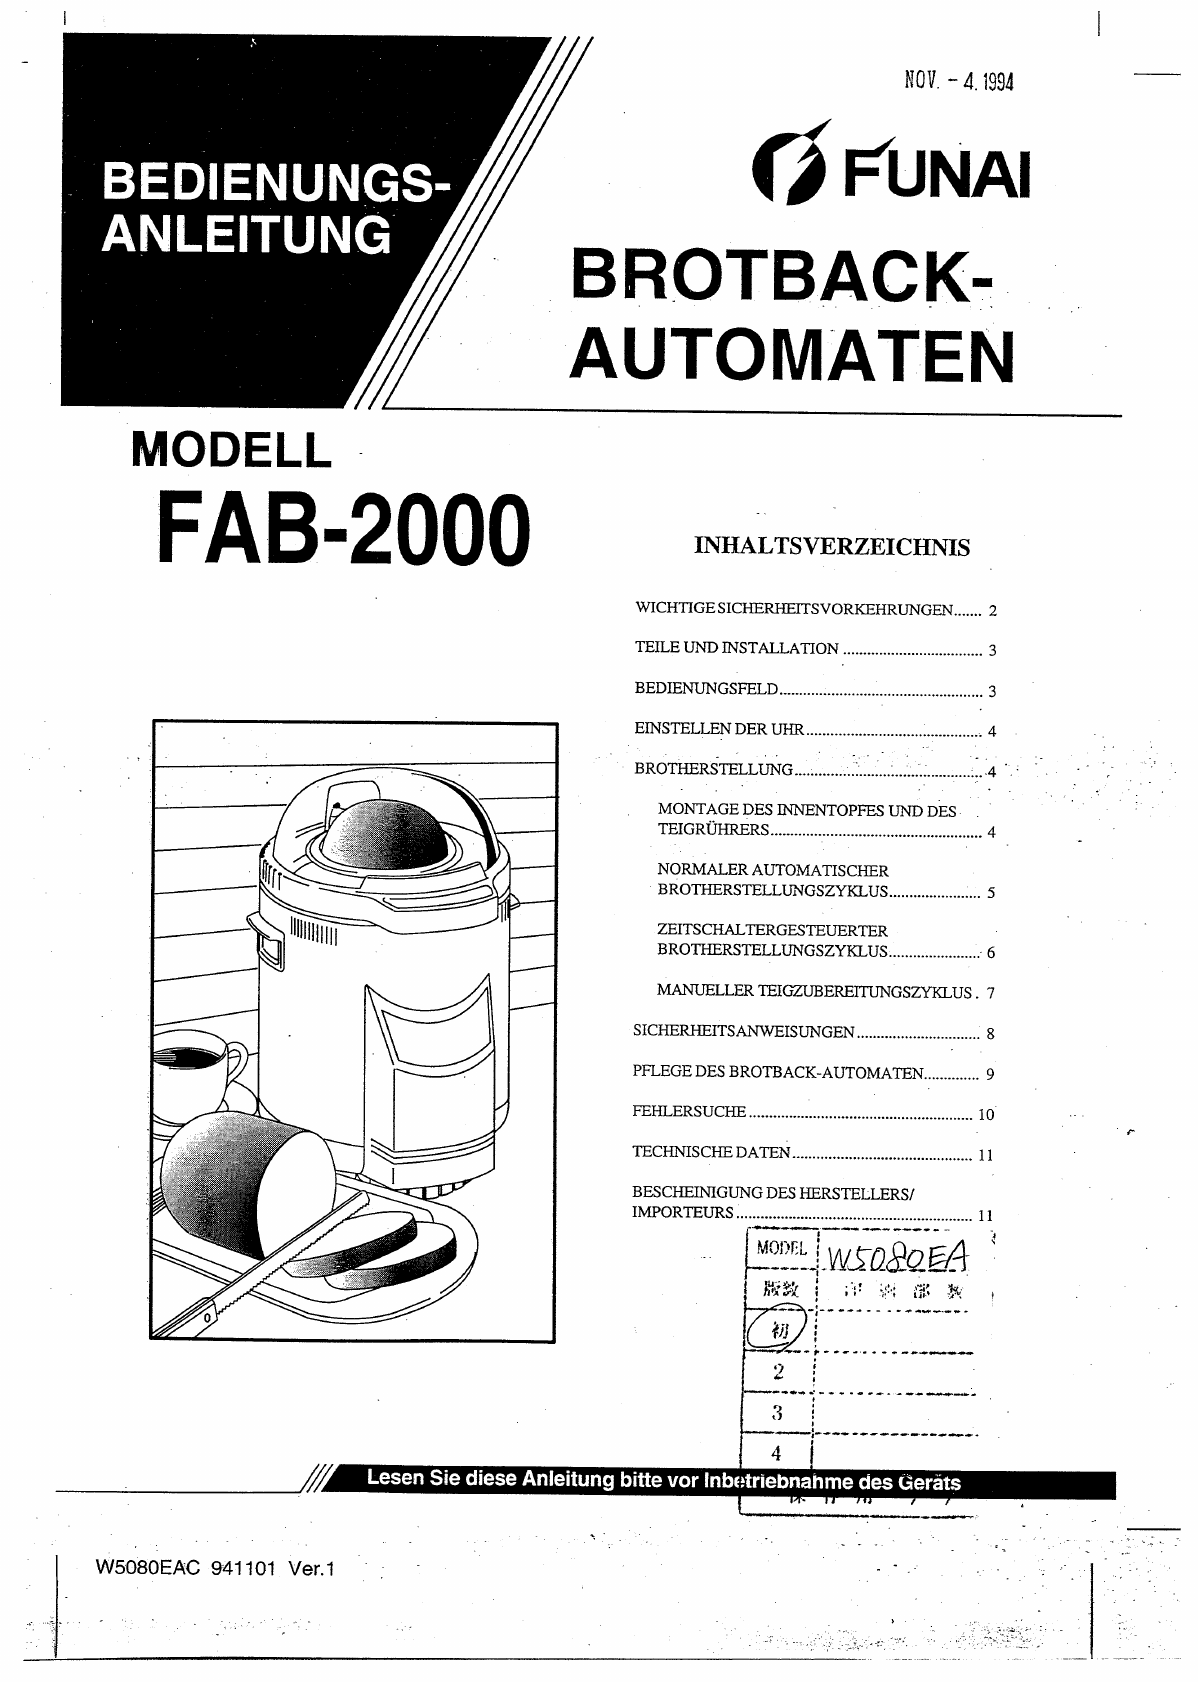 Manual Funai FAB-2000 (page 1 of 12) (German)